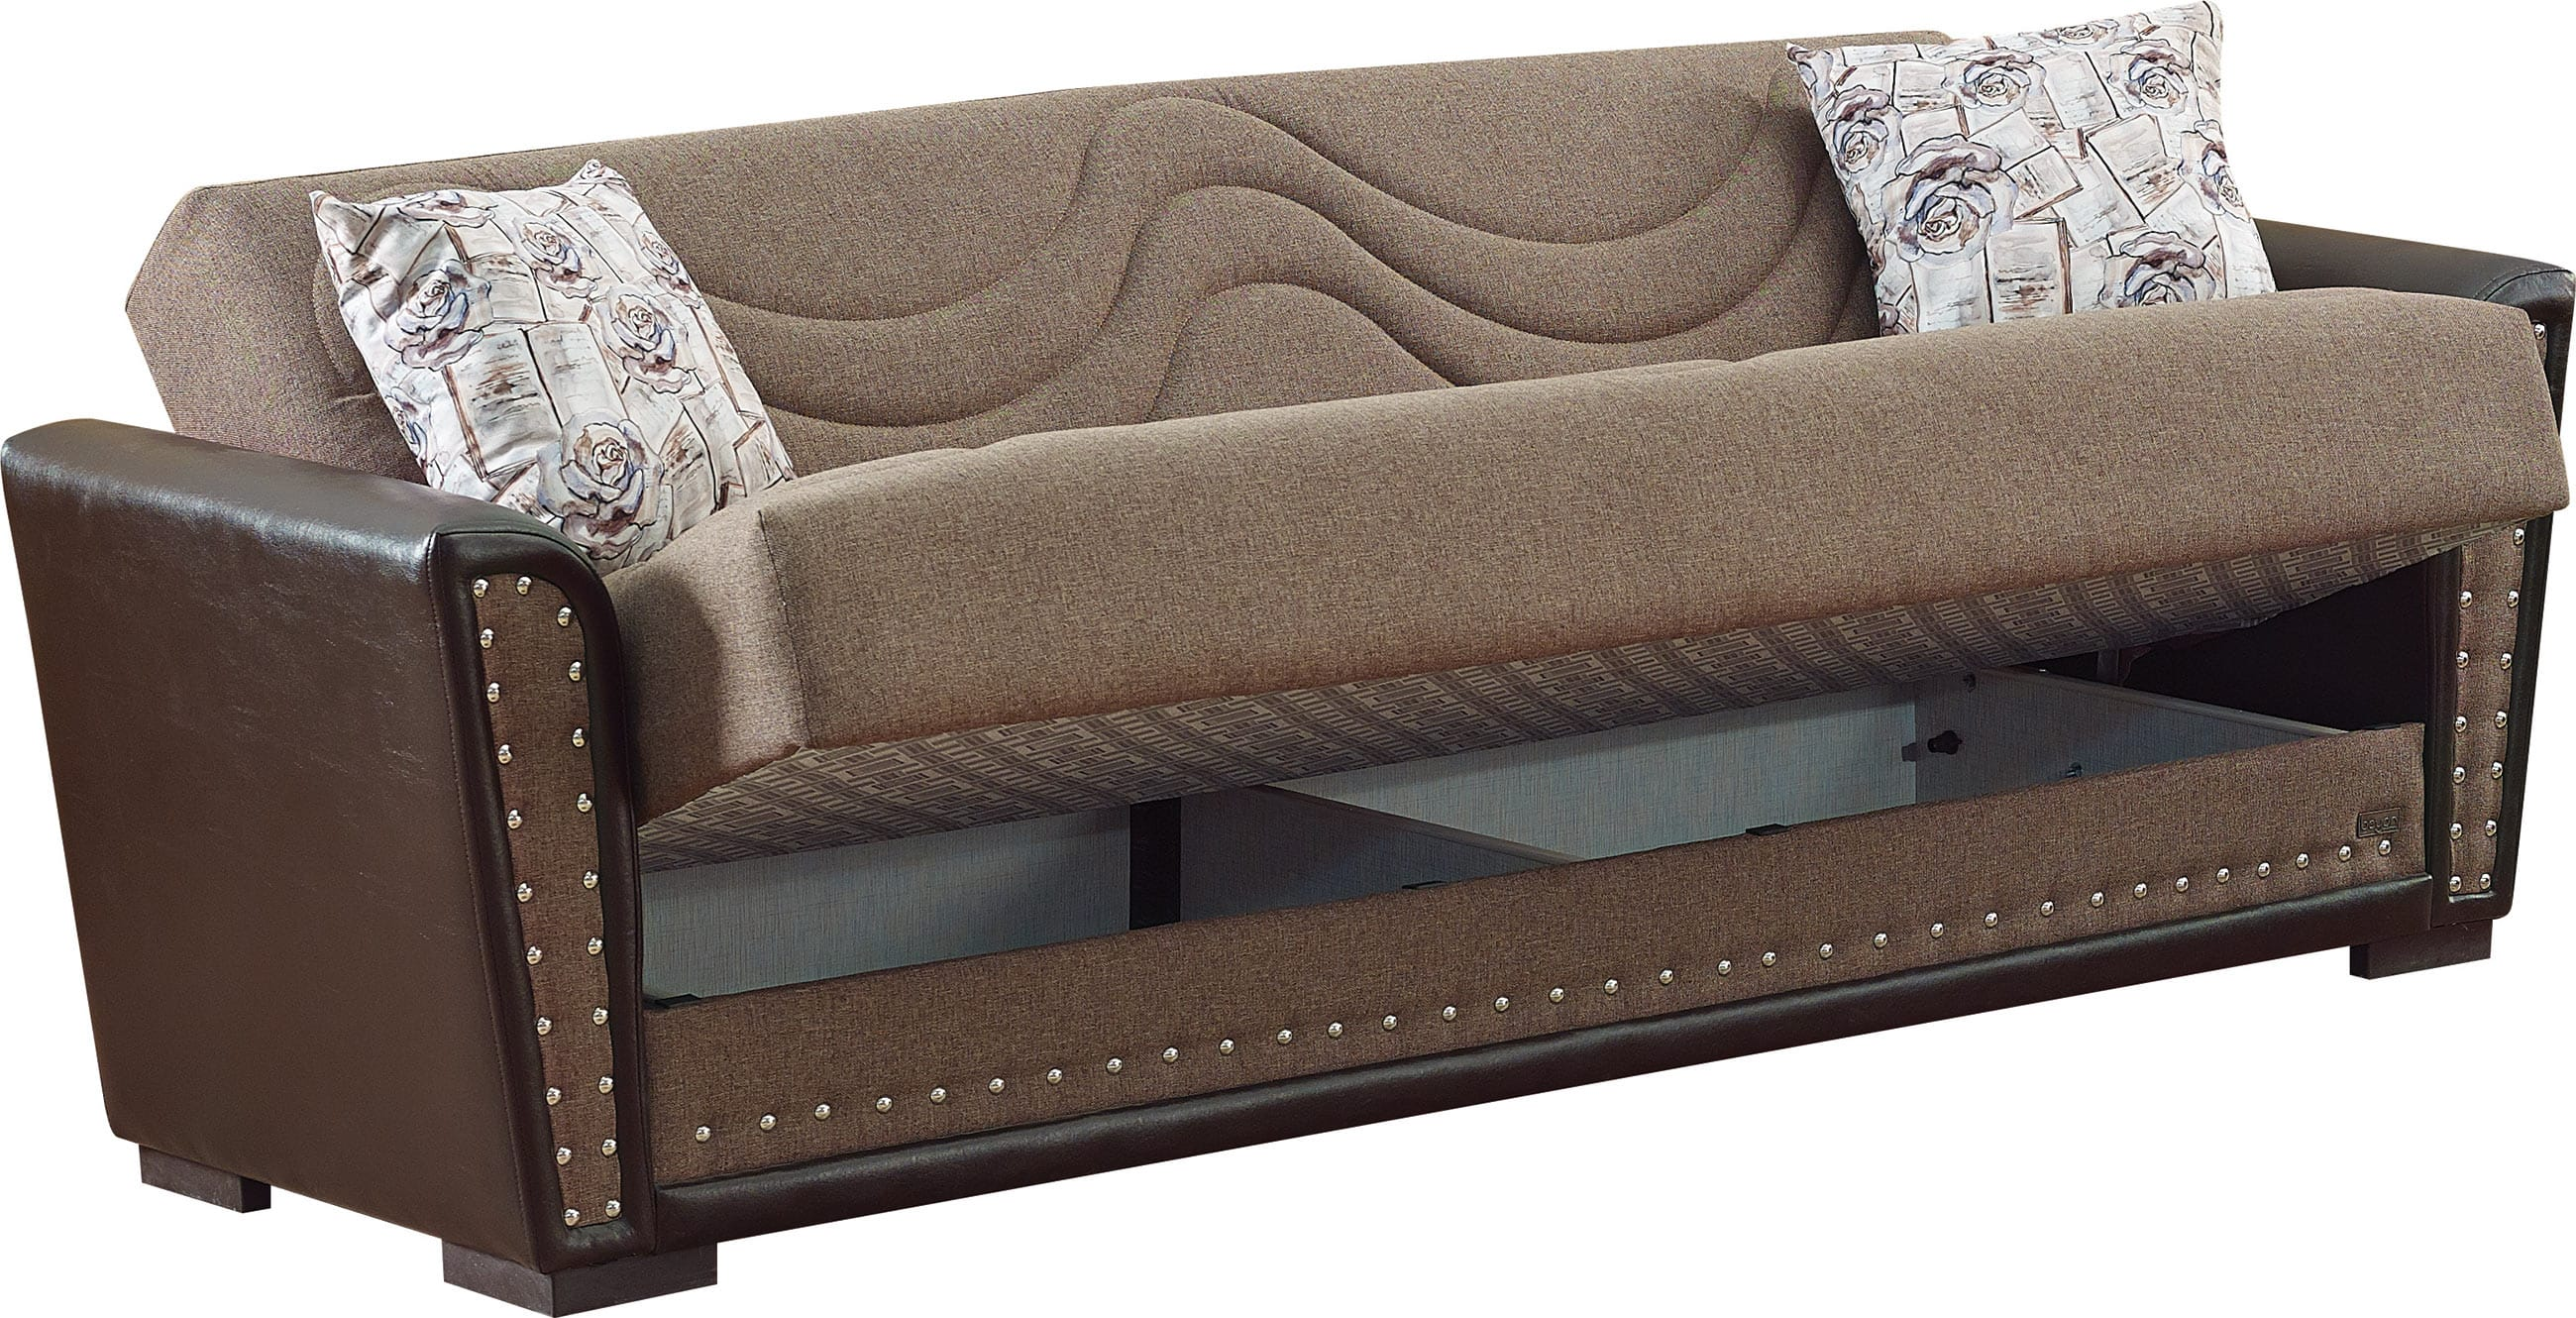 sectional sofa bed in toronto short single brown fabric by empire furniture usa